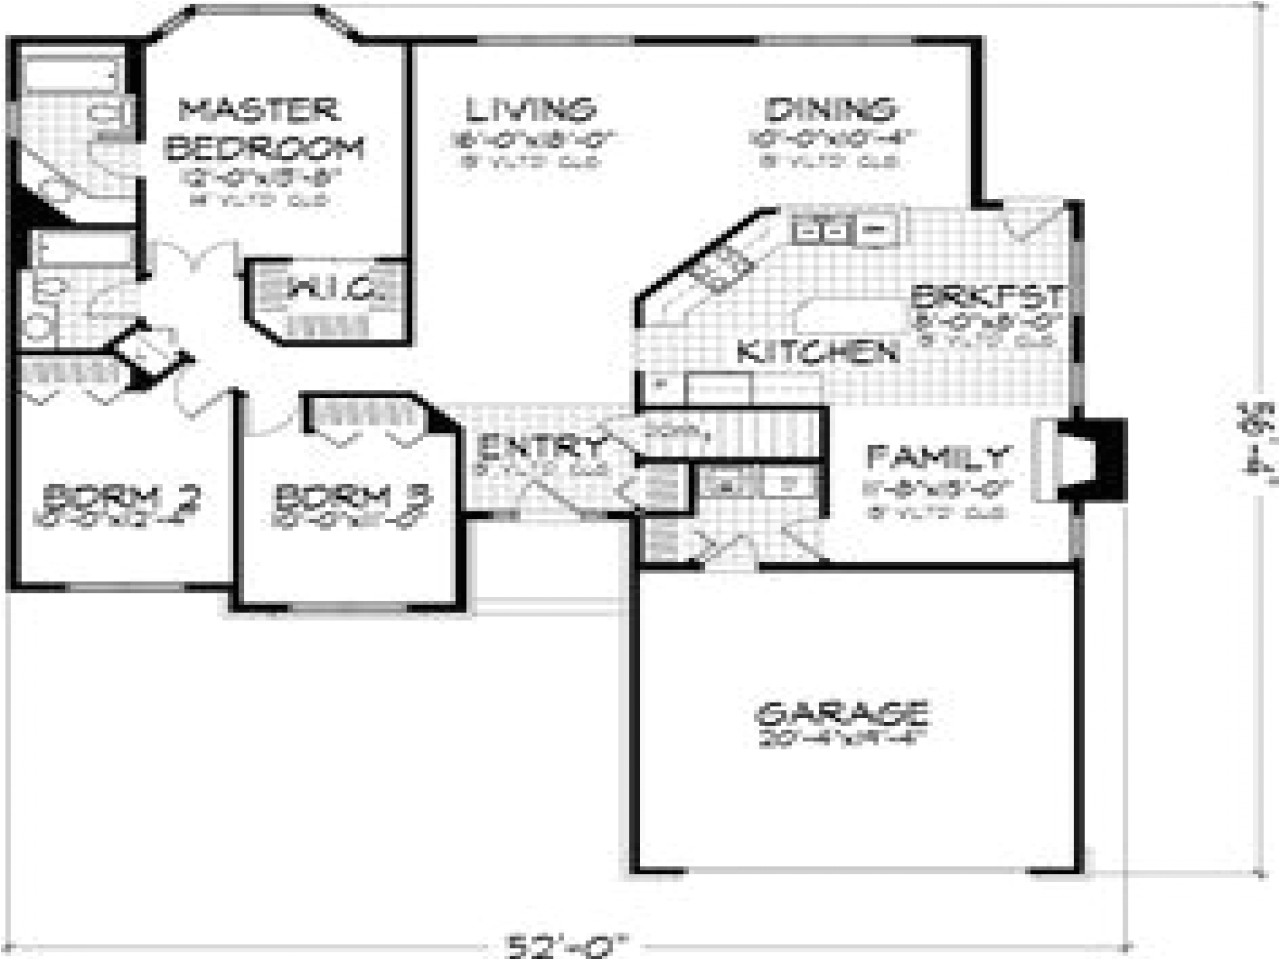 a0f68d18c67ee2dc 3 small house bedroom 3 bedroom house floor plans with garage